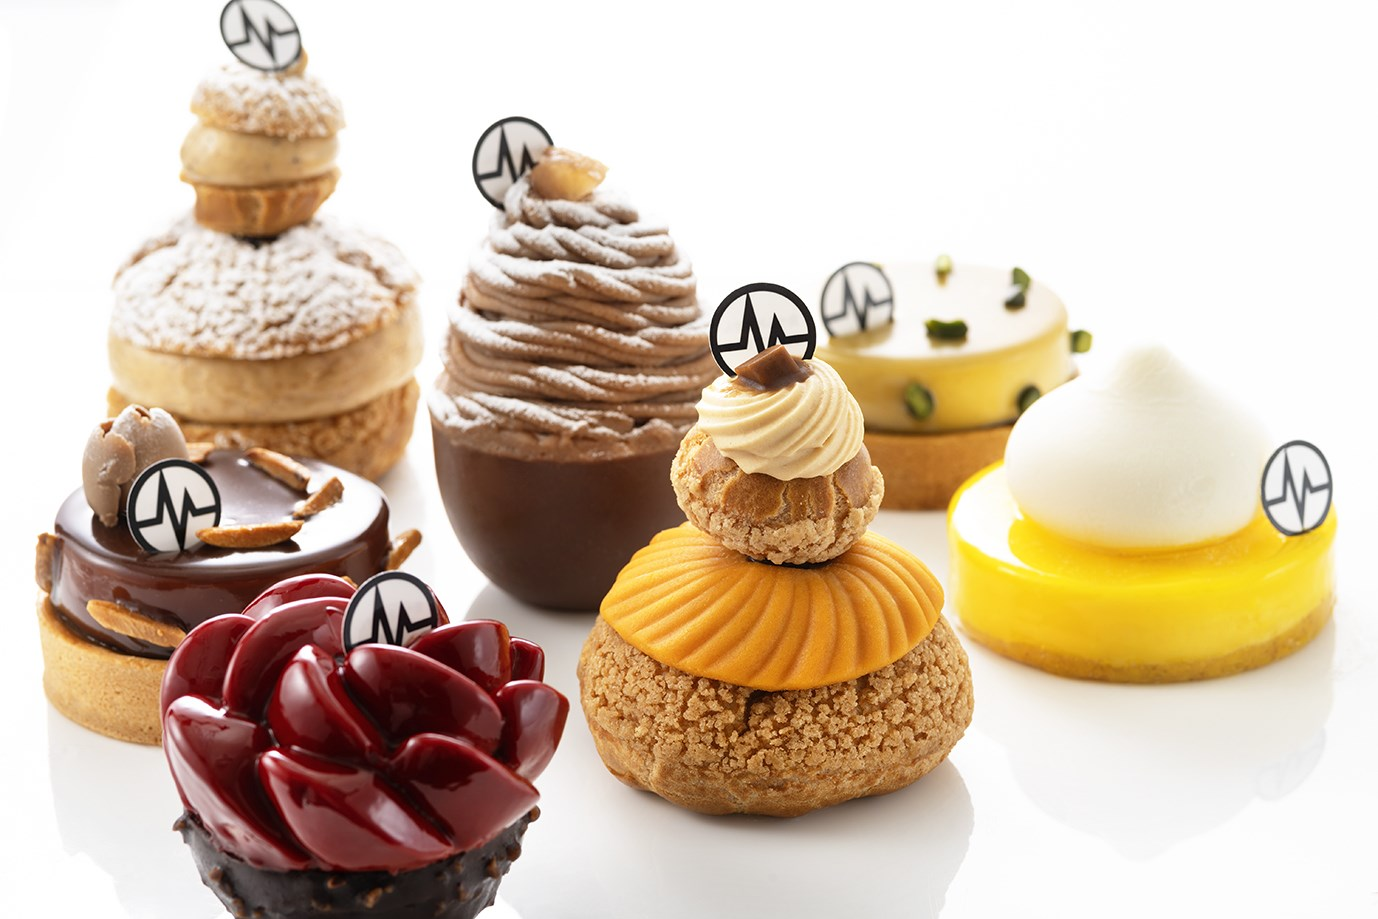 Show me all the sugar I've been patient for - Victoire&Kane Original_patisserie_0